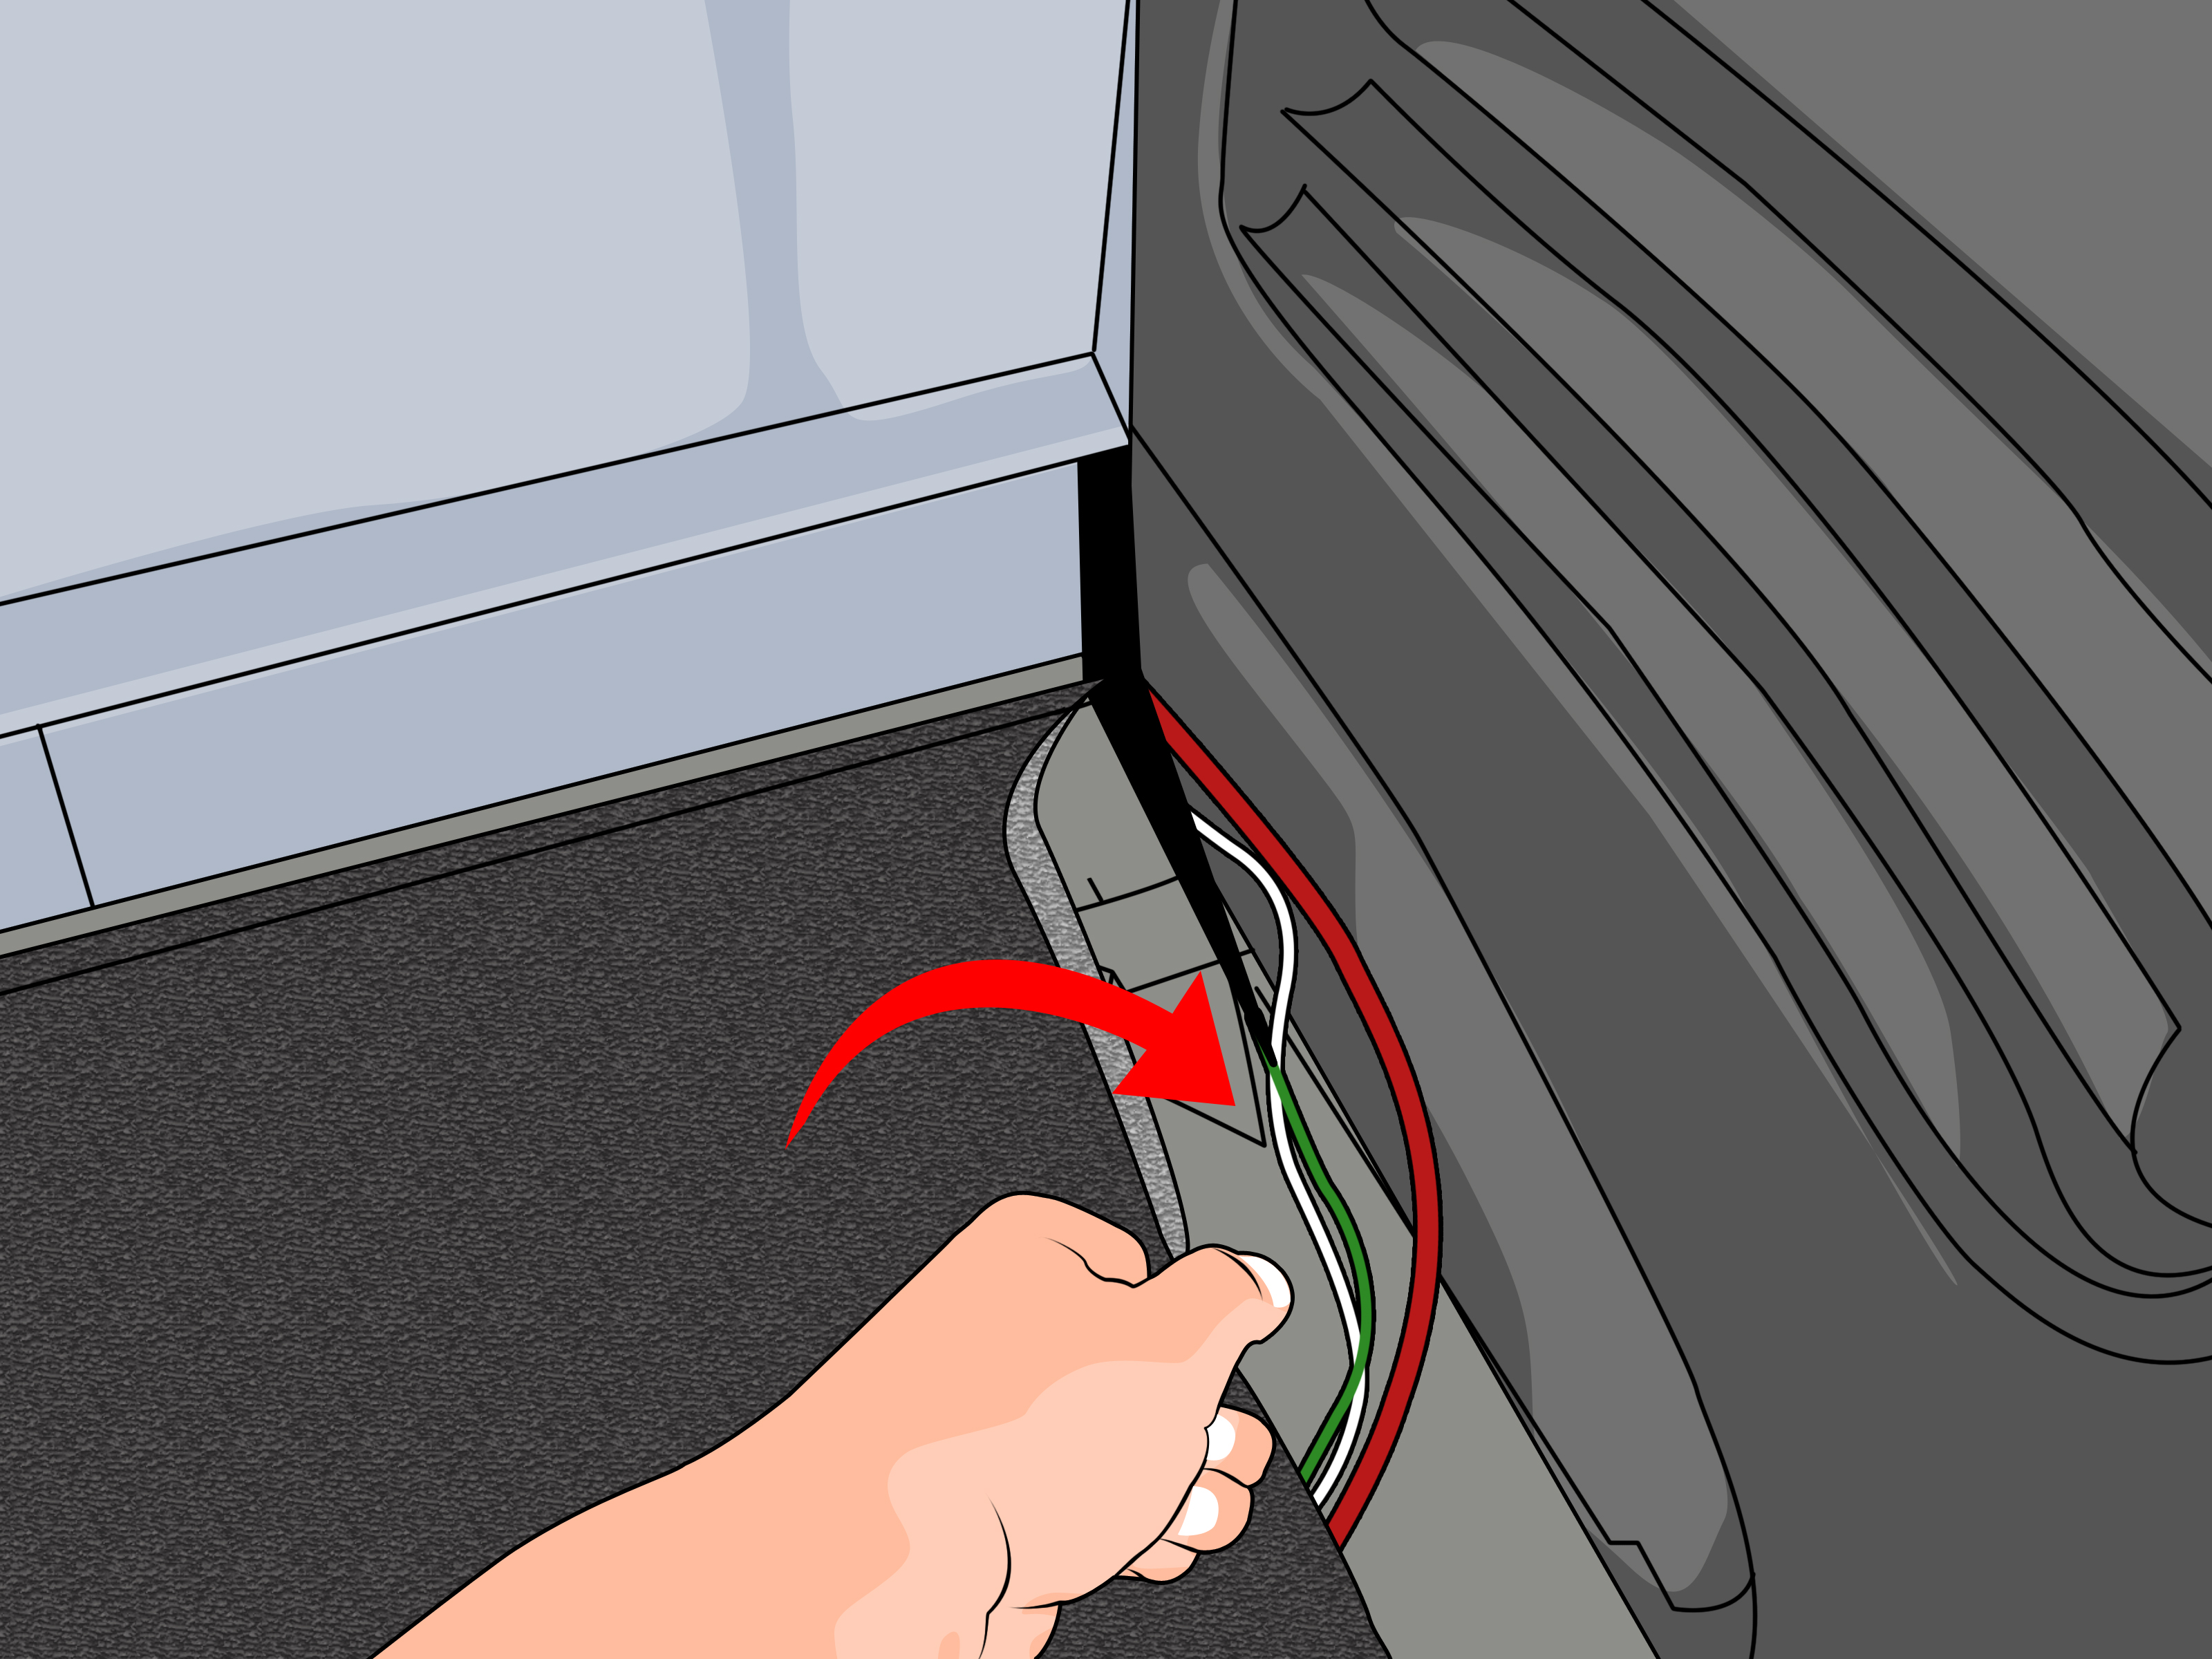 peugeot 207 wiring diagram 2007 ford f150 brake light 4 ways to disable a seat belt alarm - wikihow